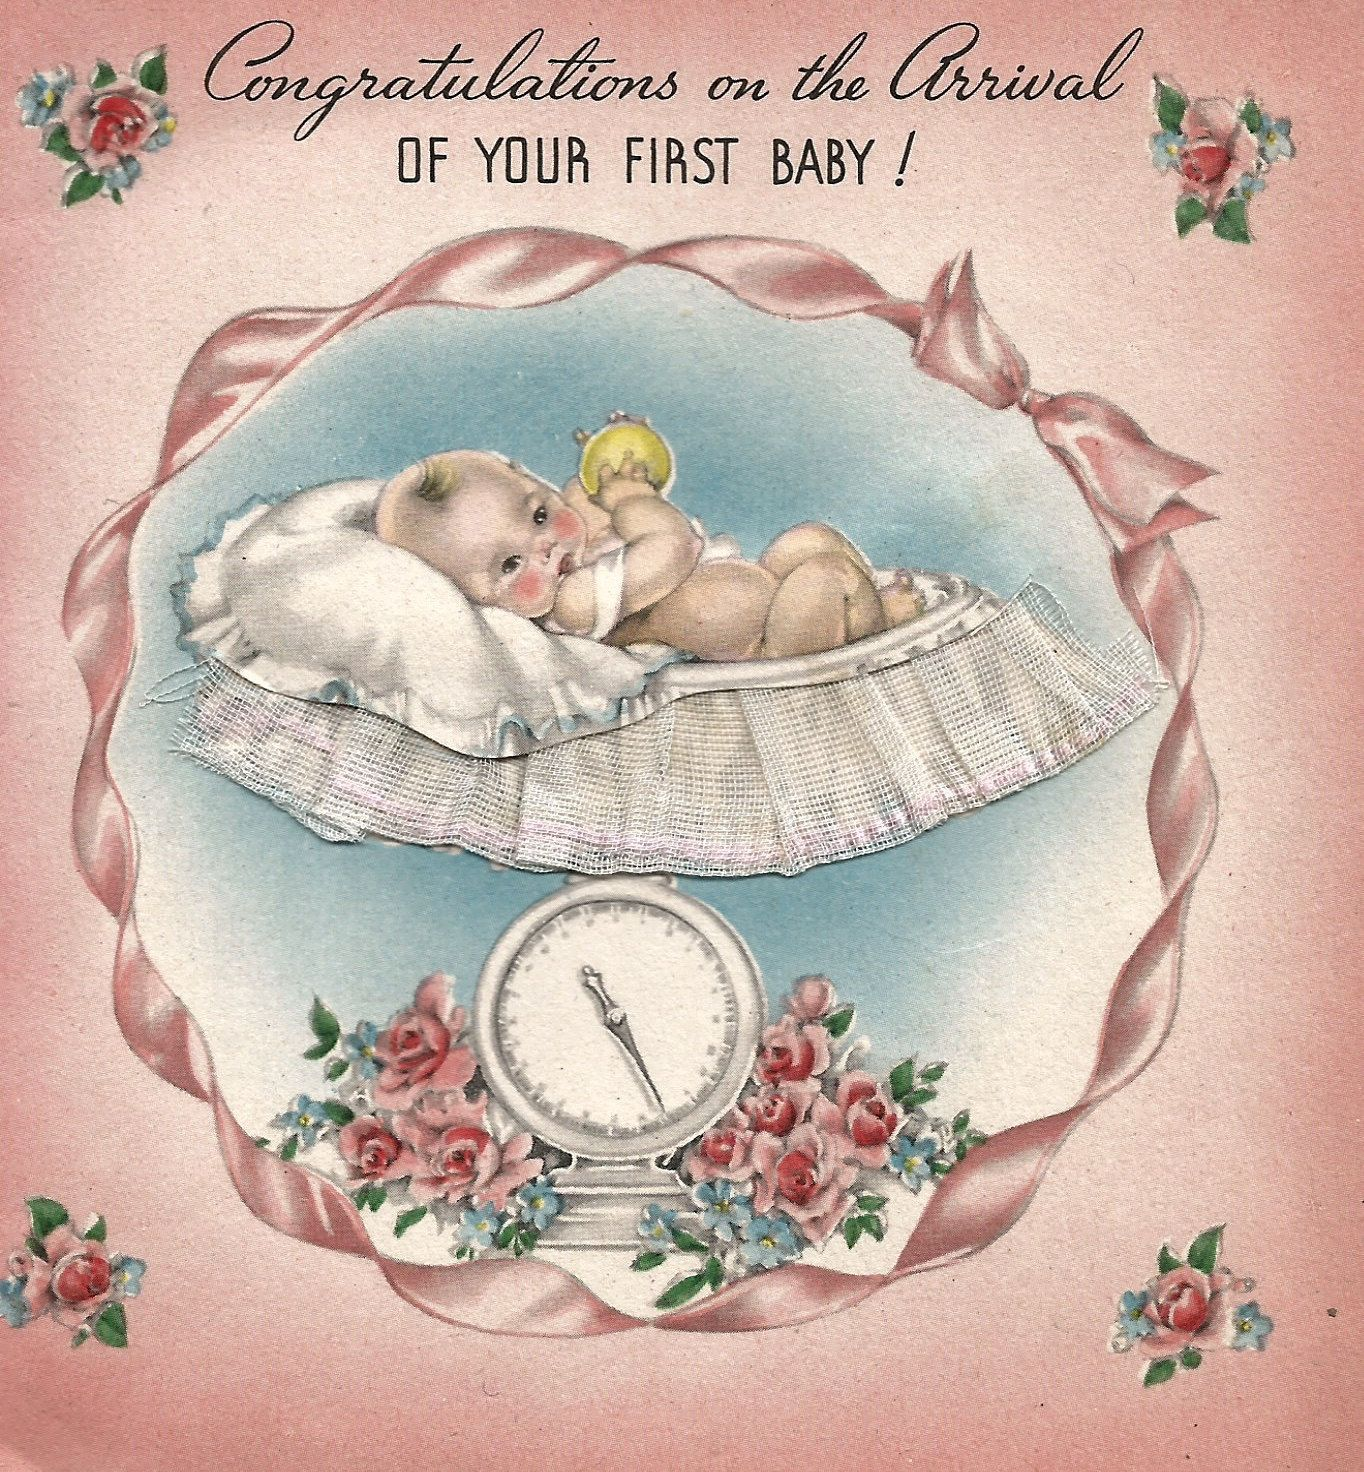 Vintage first baby congratulations greeting card boy girl scale vintage first baby congratulations greeting card boy girl scale digital download printable instant image by biggdesigns kristyandbryce Gallery